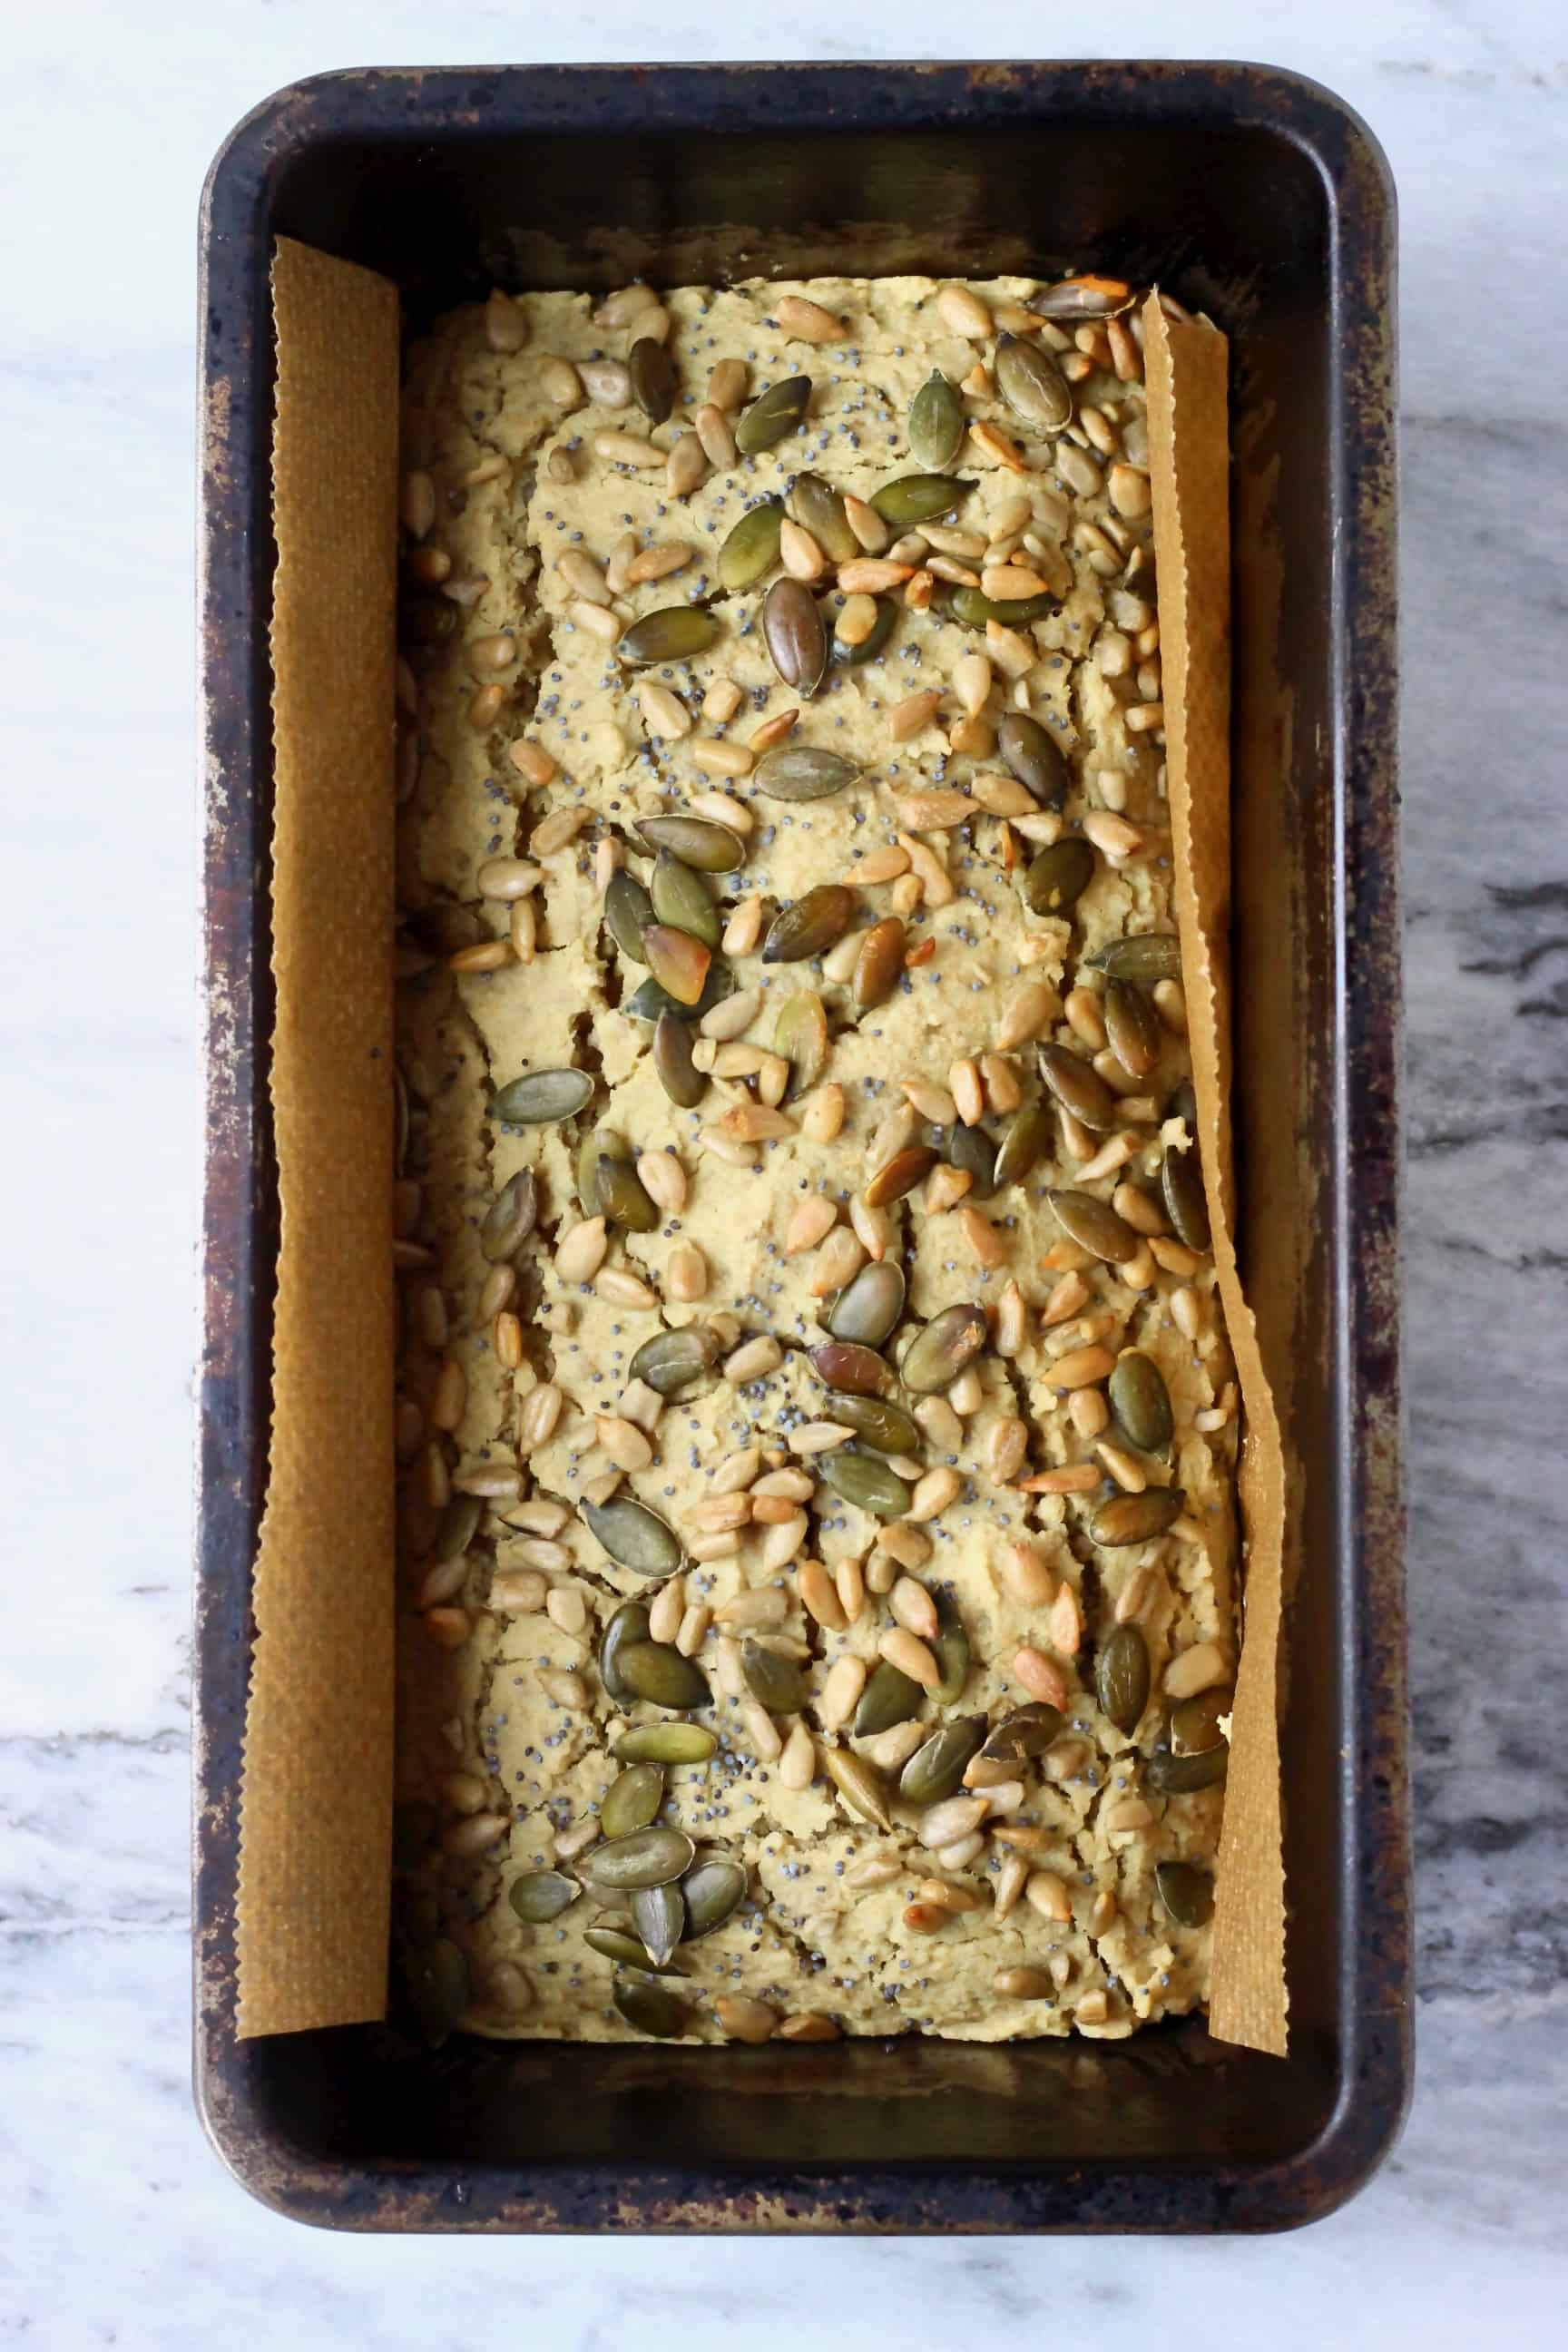 A loaf of sunflower seed bread topped with mixed seeds in a loaf tin